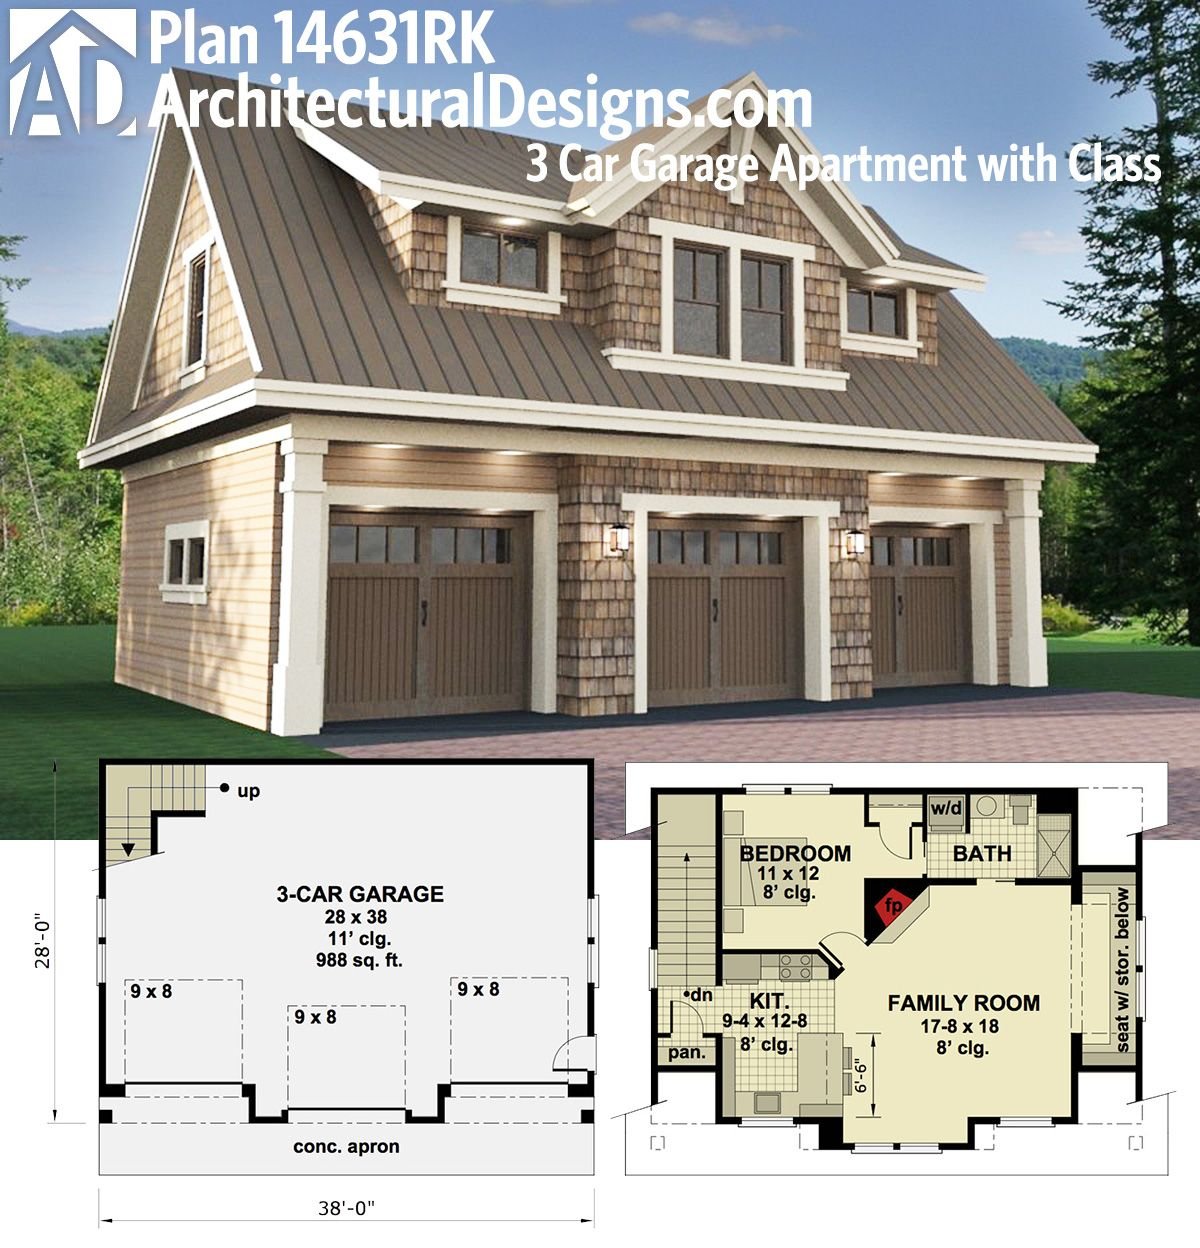 Architectural Designs Carriage House Plan 14631rk Gives You Parking For 3 Cars On The Main Floor And A Fully Functioning Apartment With Almost 1 000 Sq Ft